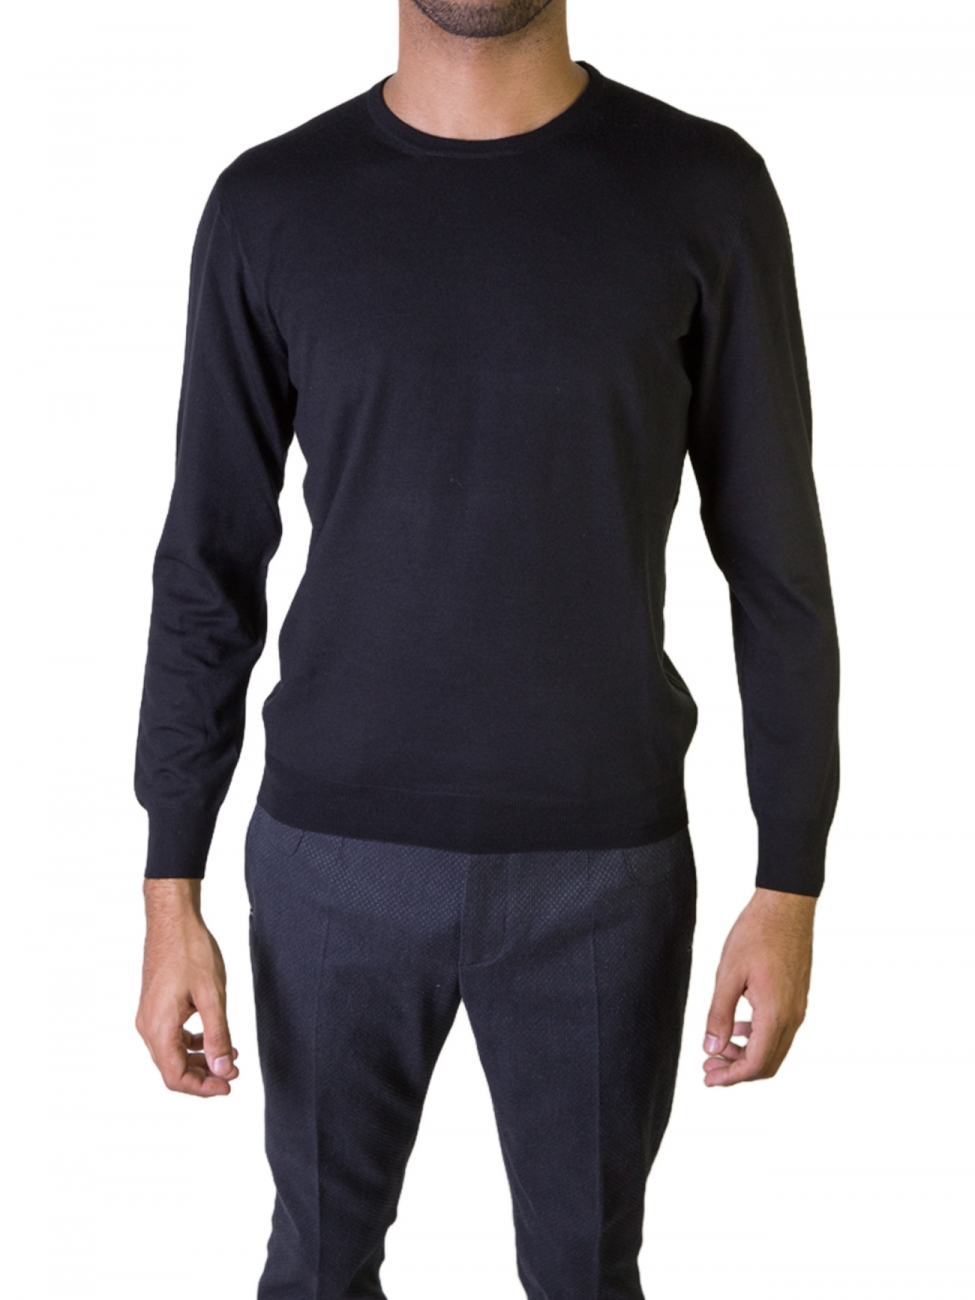 Shop for men's sweaters at obmenvisitami.tk Next day delivery and free returns available. s of products online. Browse sweat tops now! Black Crew Neck Sweat. £ Grey Block Crew. £ Charcoal Logo Zip Through Funnel Neck. £ Navy Long Sleeve Slub Crew. £ Black Stag Crew. £ Navy Stag Crew. £ Grey Stag Crew.